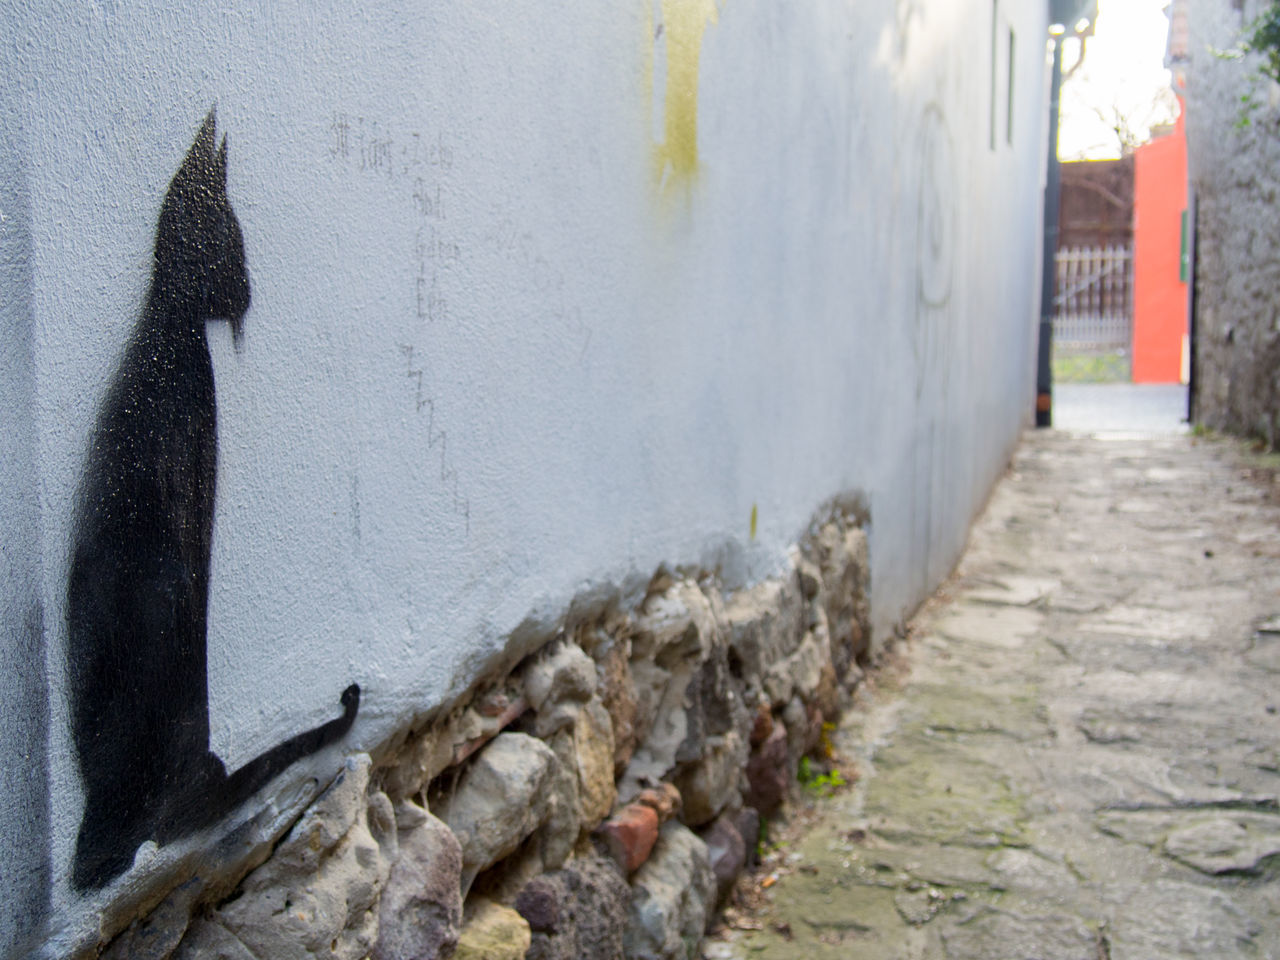 Alley Animal Themes Architecture BLackCat Built Structure Close-up Day Graffiti Lostplaces Modernart No People Outdoors Sightseeing Stones Streetart Streetphotography Urban Wall Wallart Whitewall